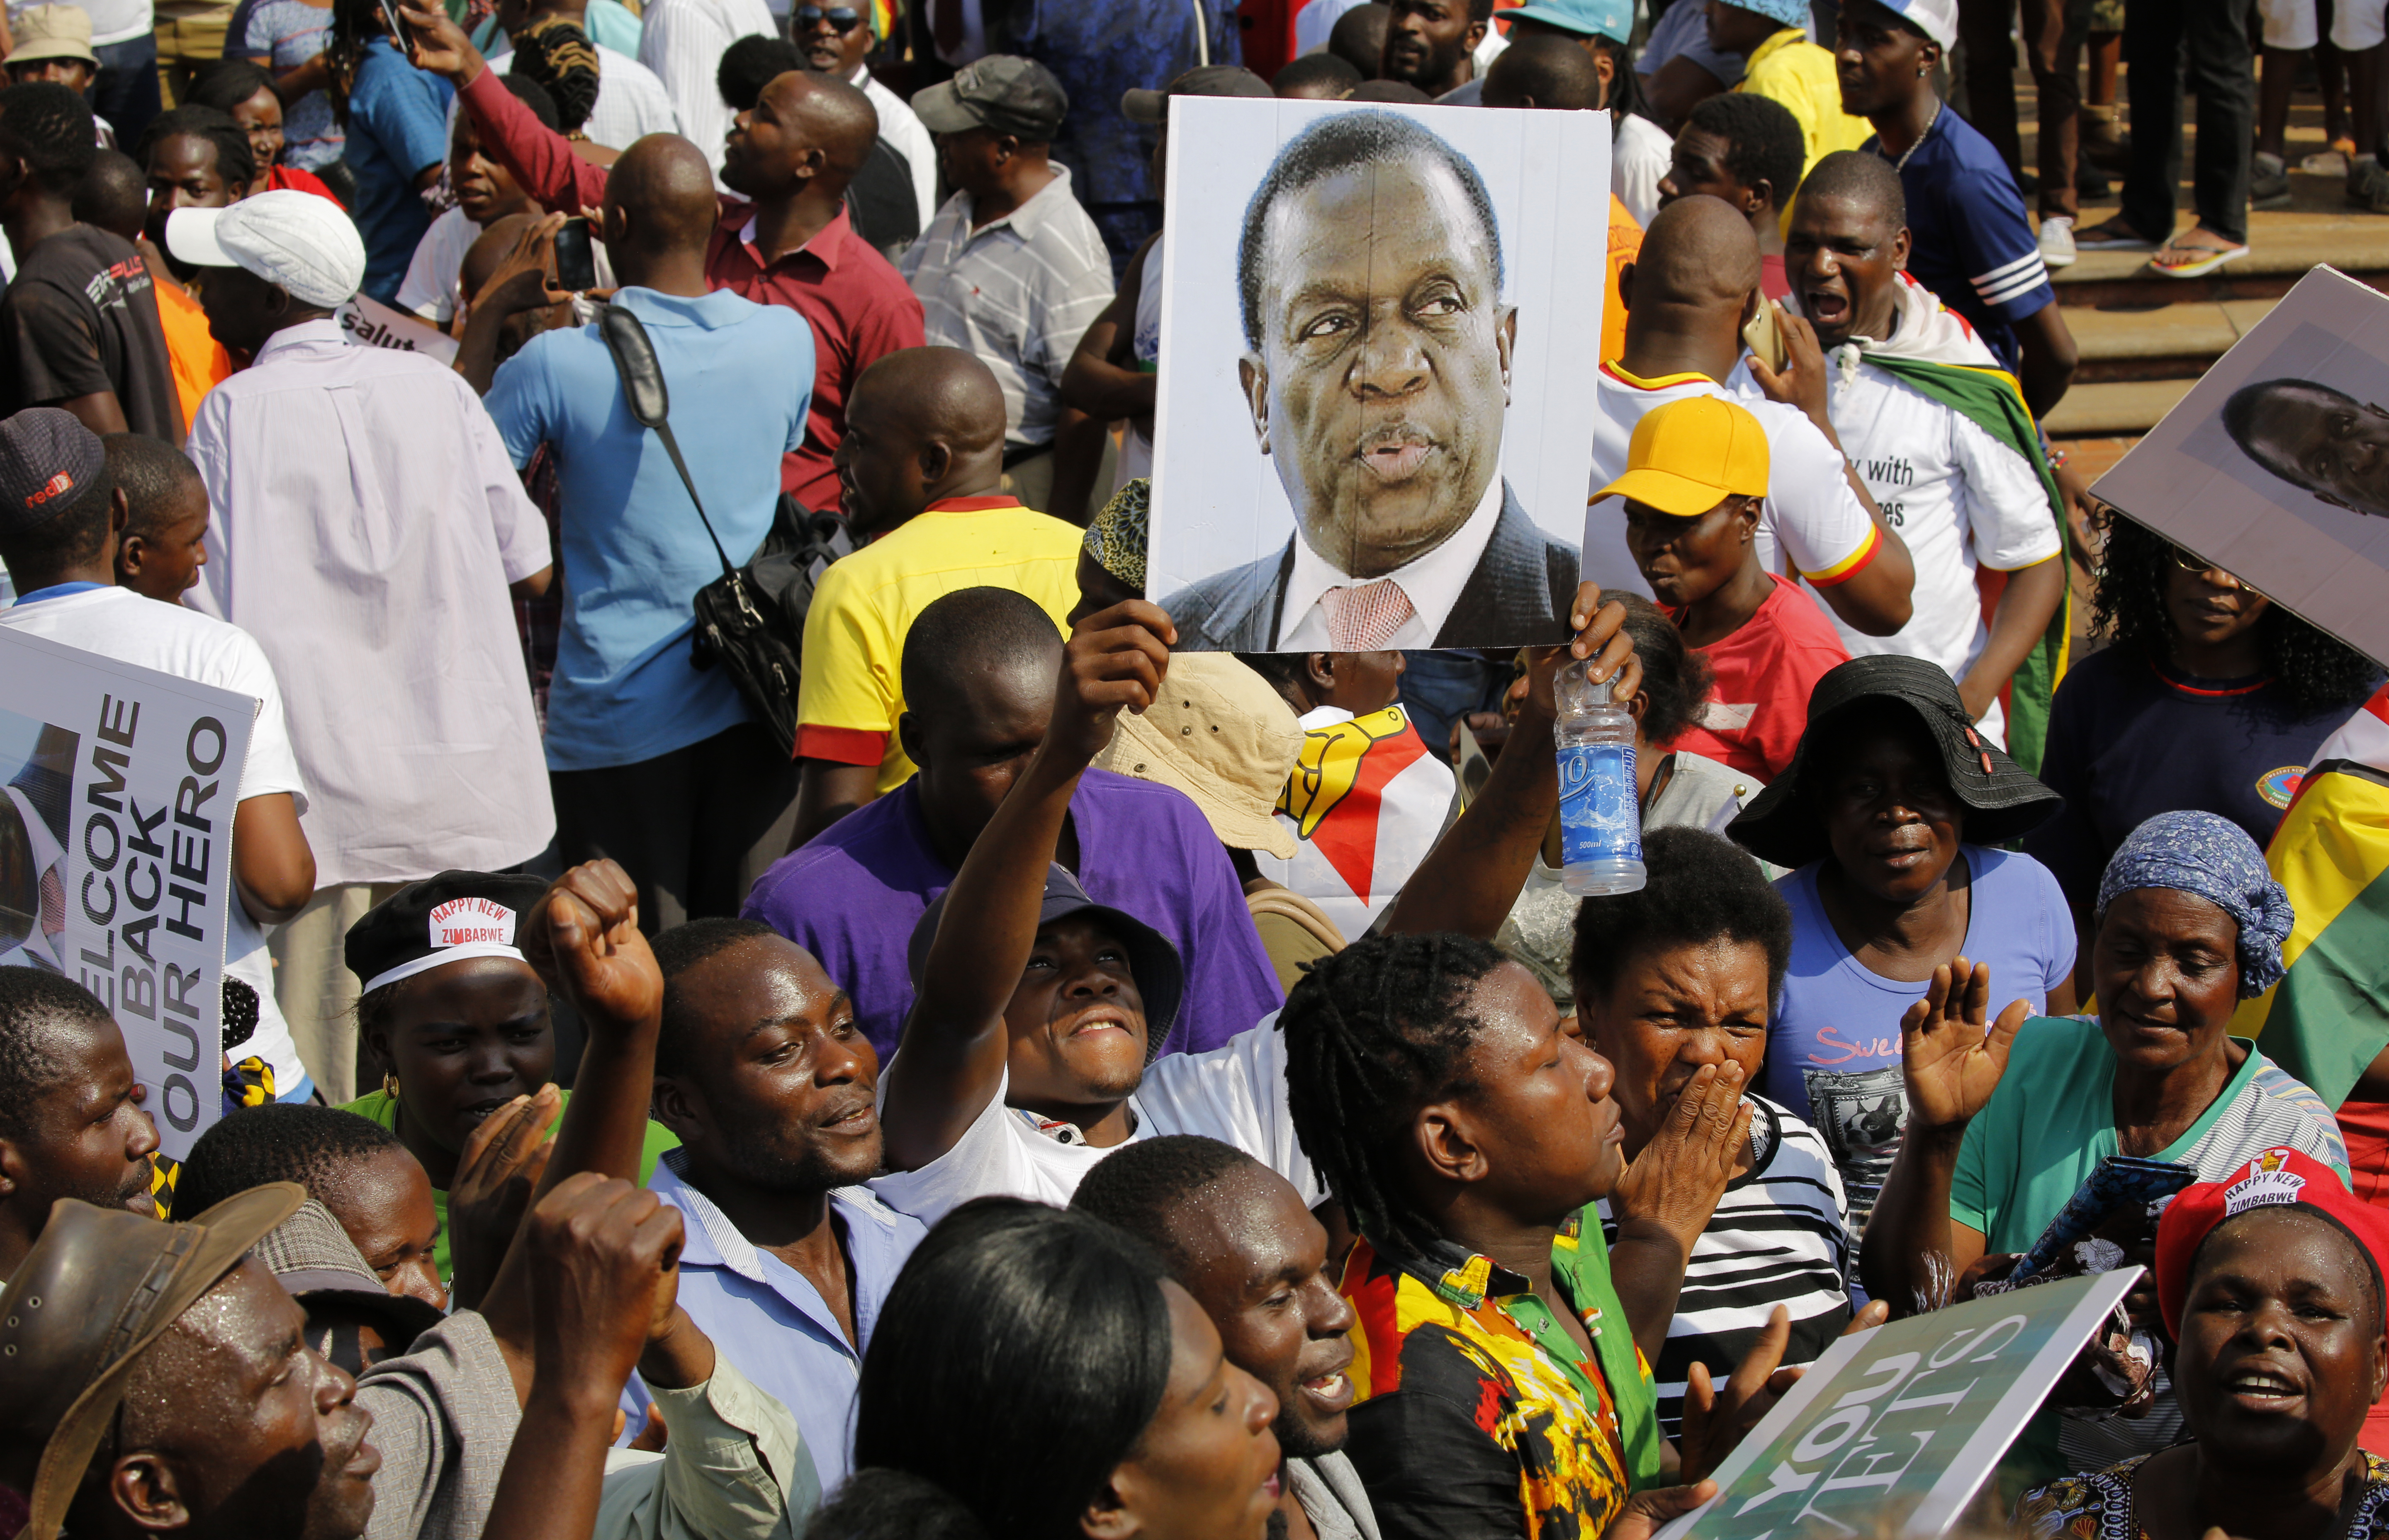 Zimbabwe's president Emmerson Mnangagwa appoints military officials to cabinet posts